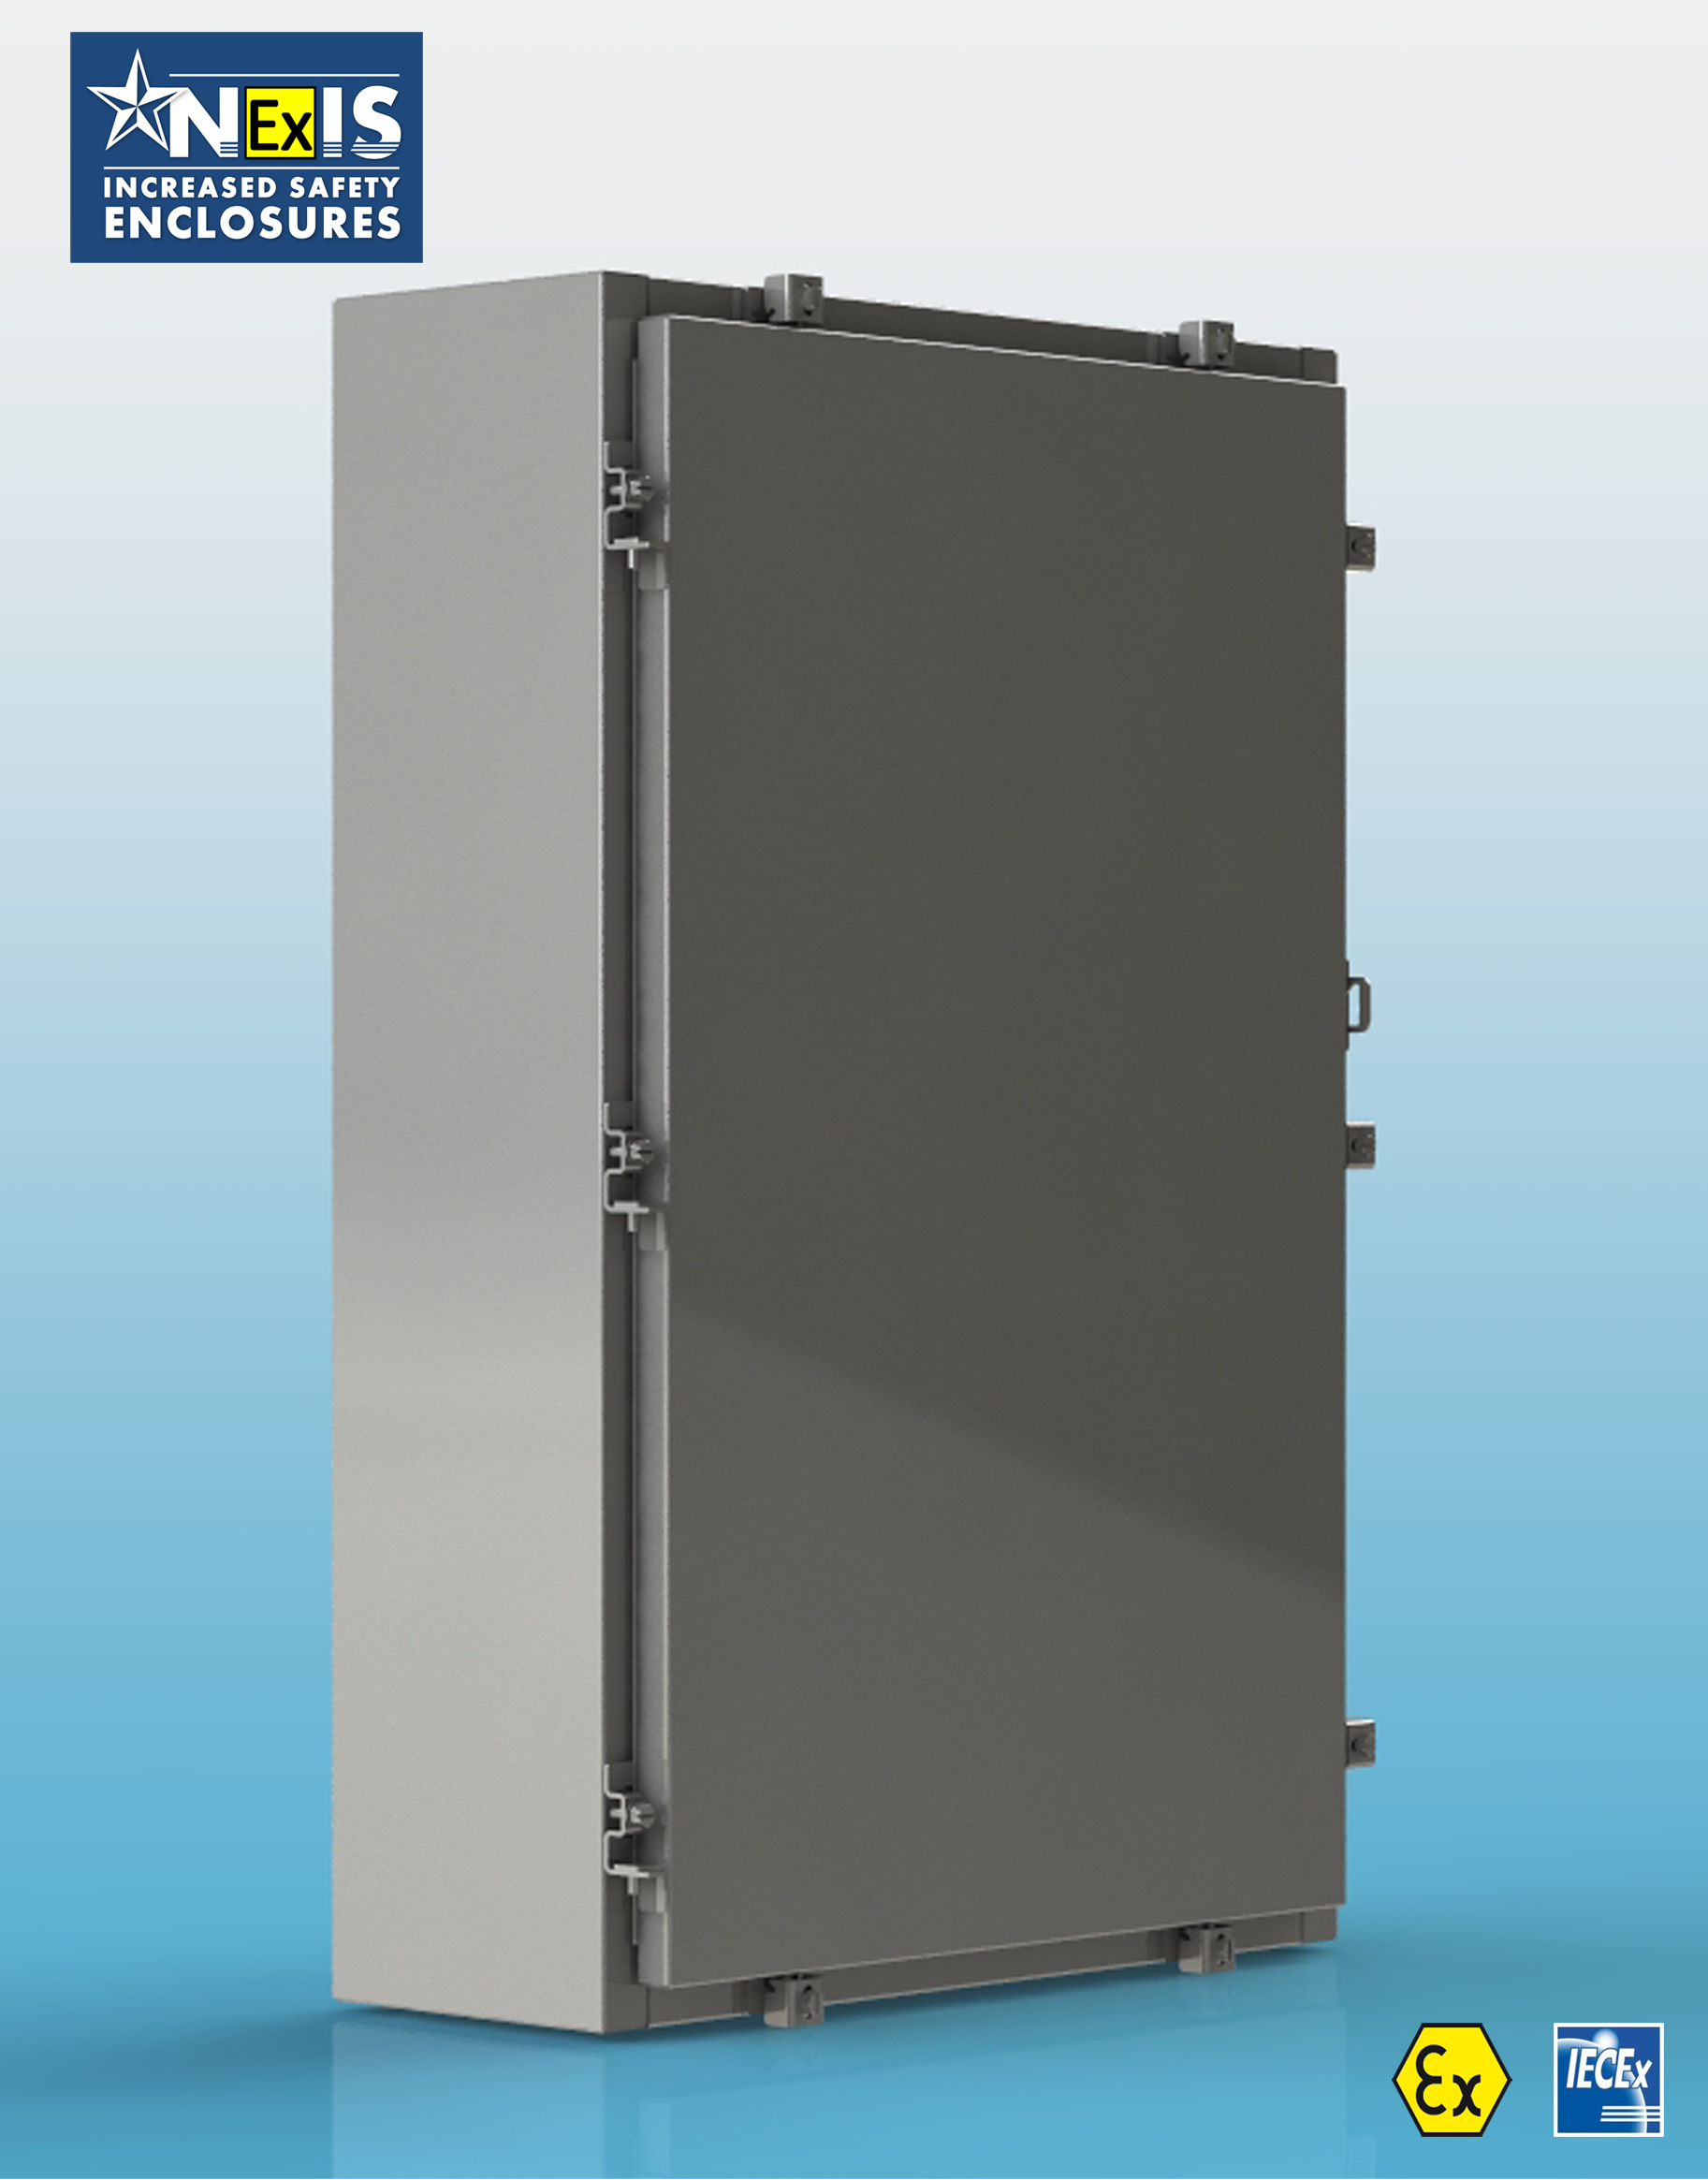 ATEX and IECEX certified enclosure